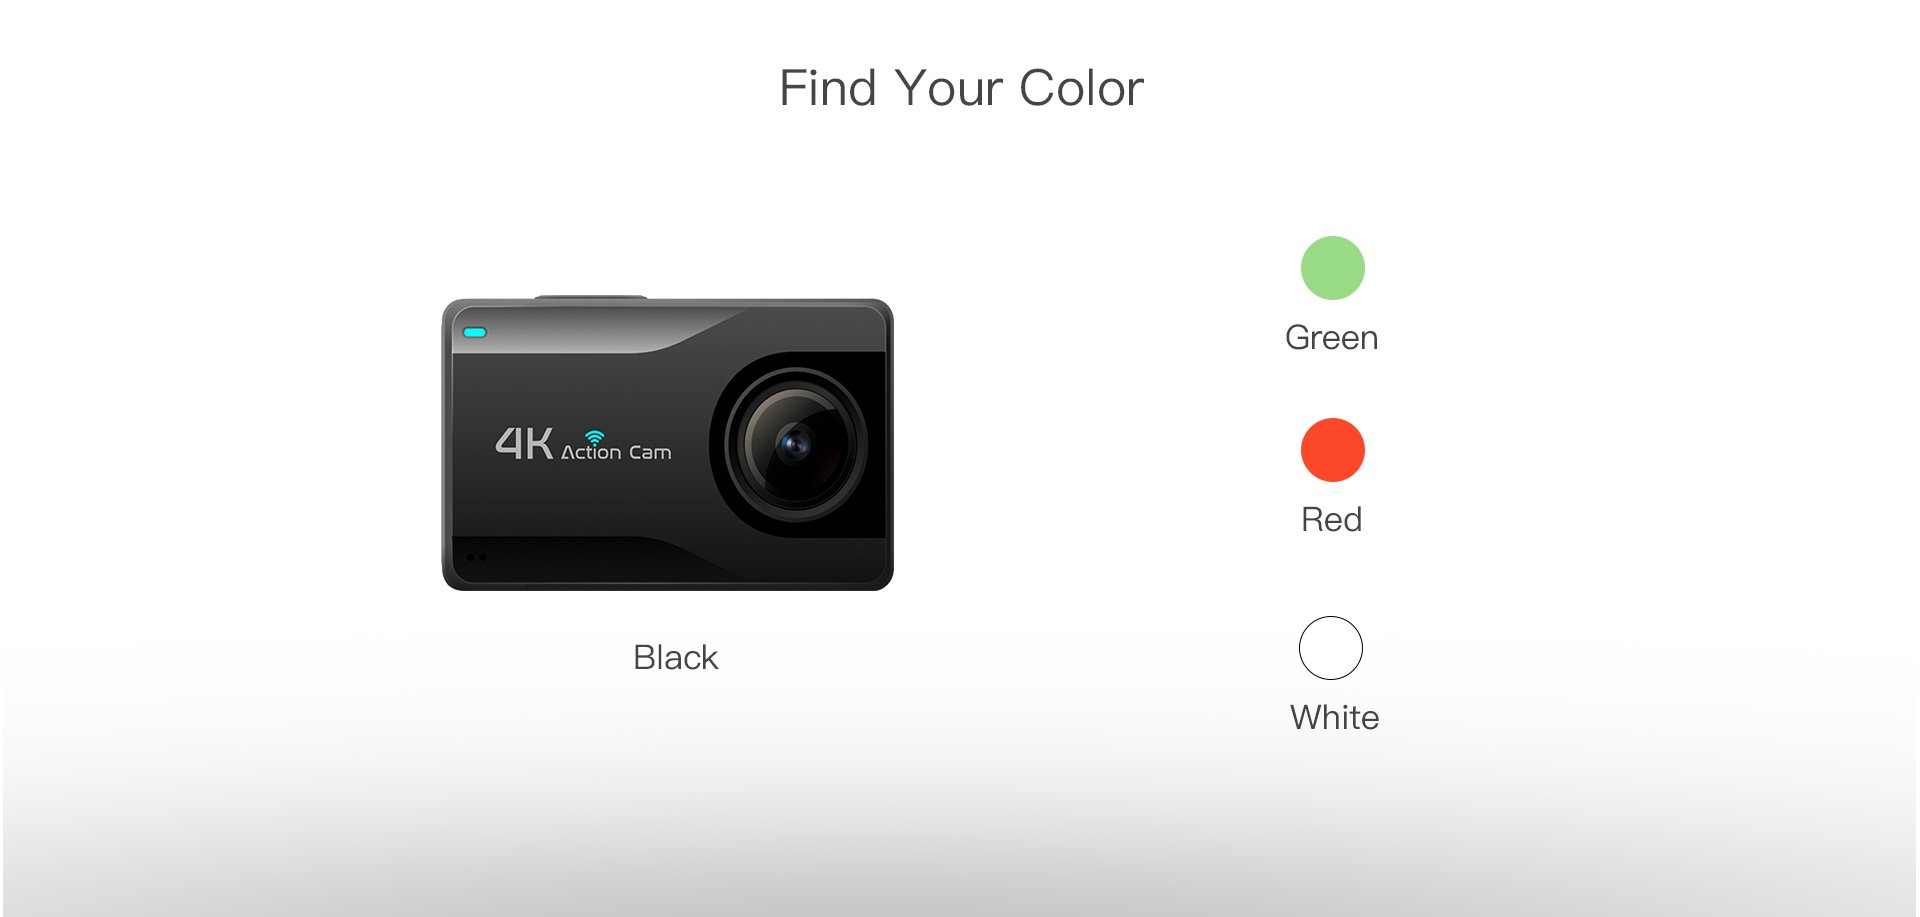 B1KS+ HiSilicon 4K Action Camera Four Color Options